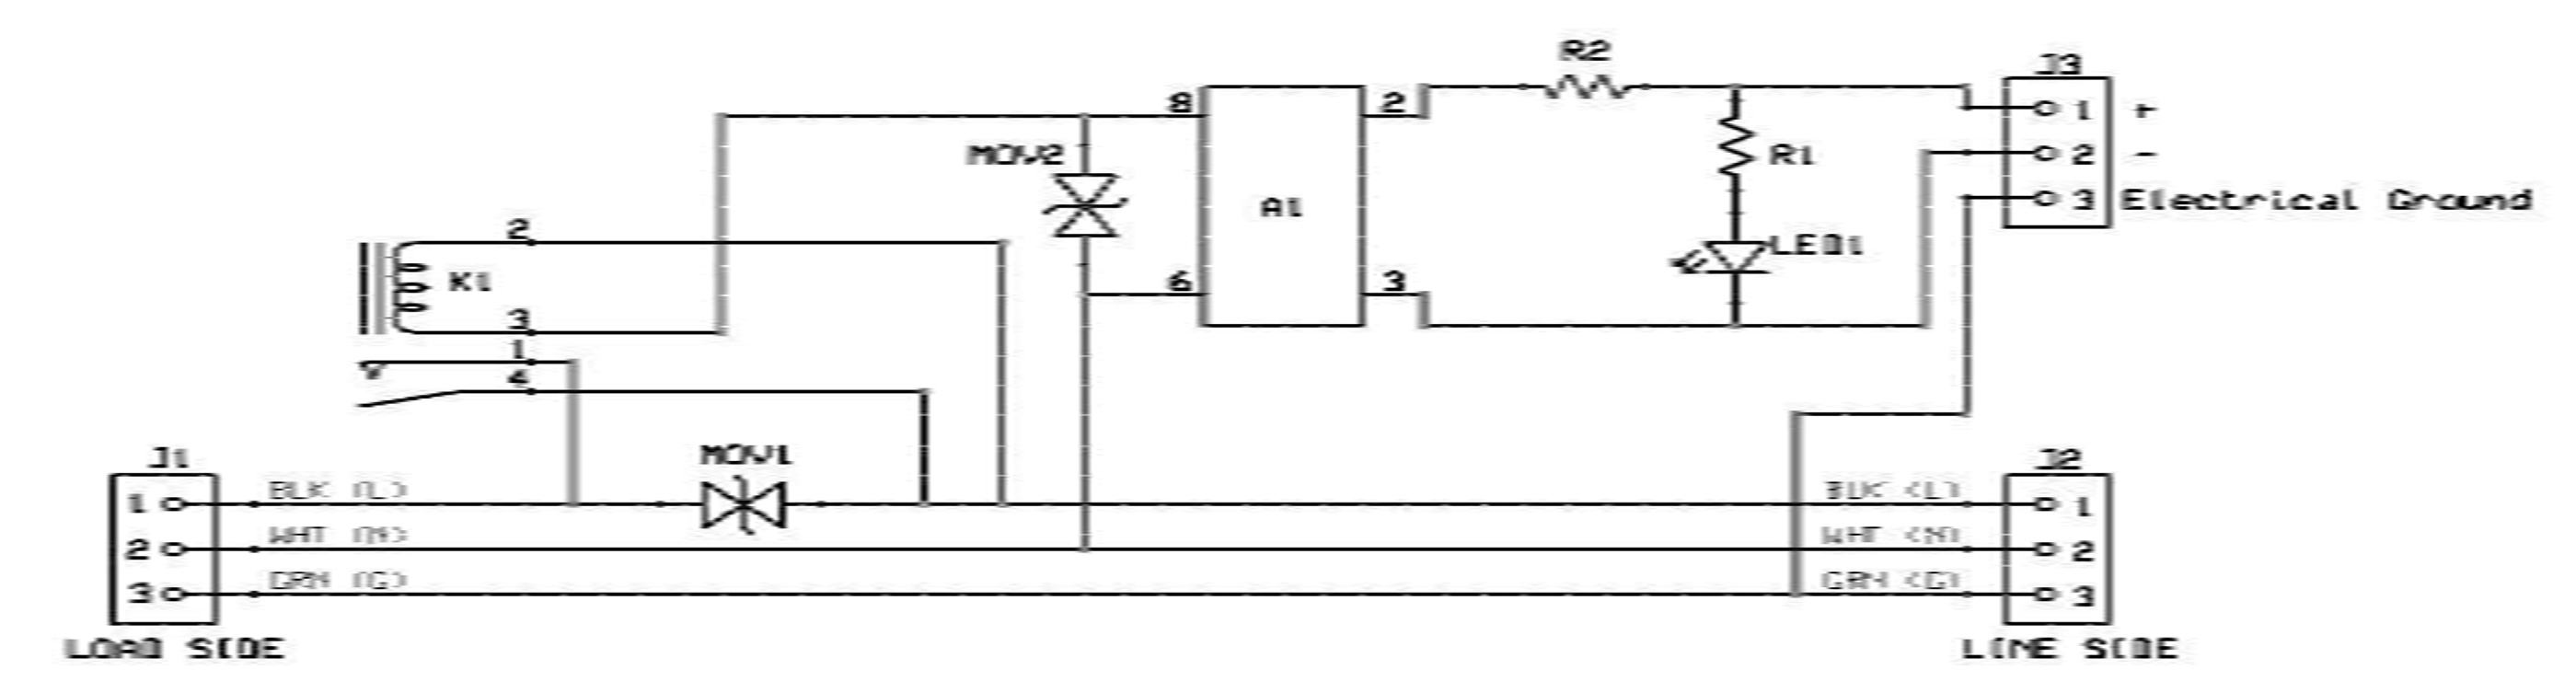 solid state relay wiring diagram itil v3 drivers relays and mbed power switch tail ii schematic